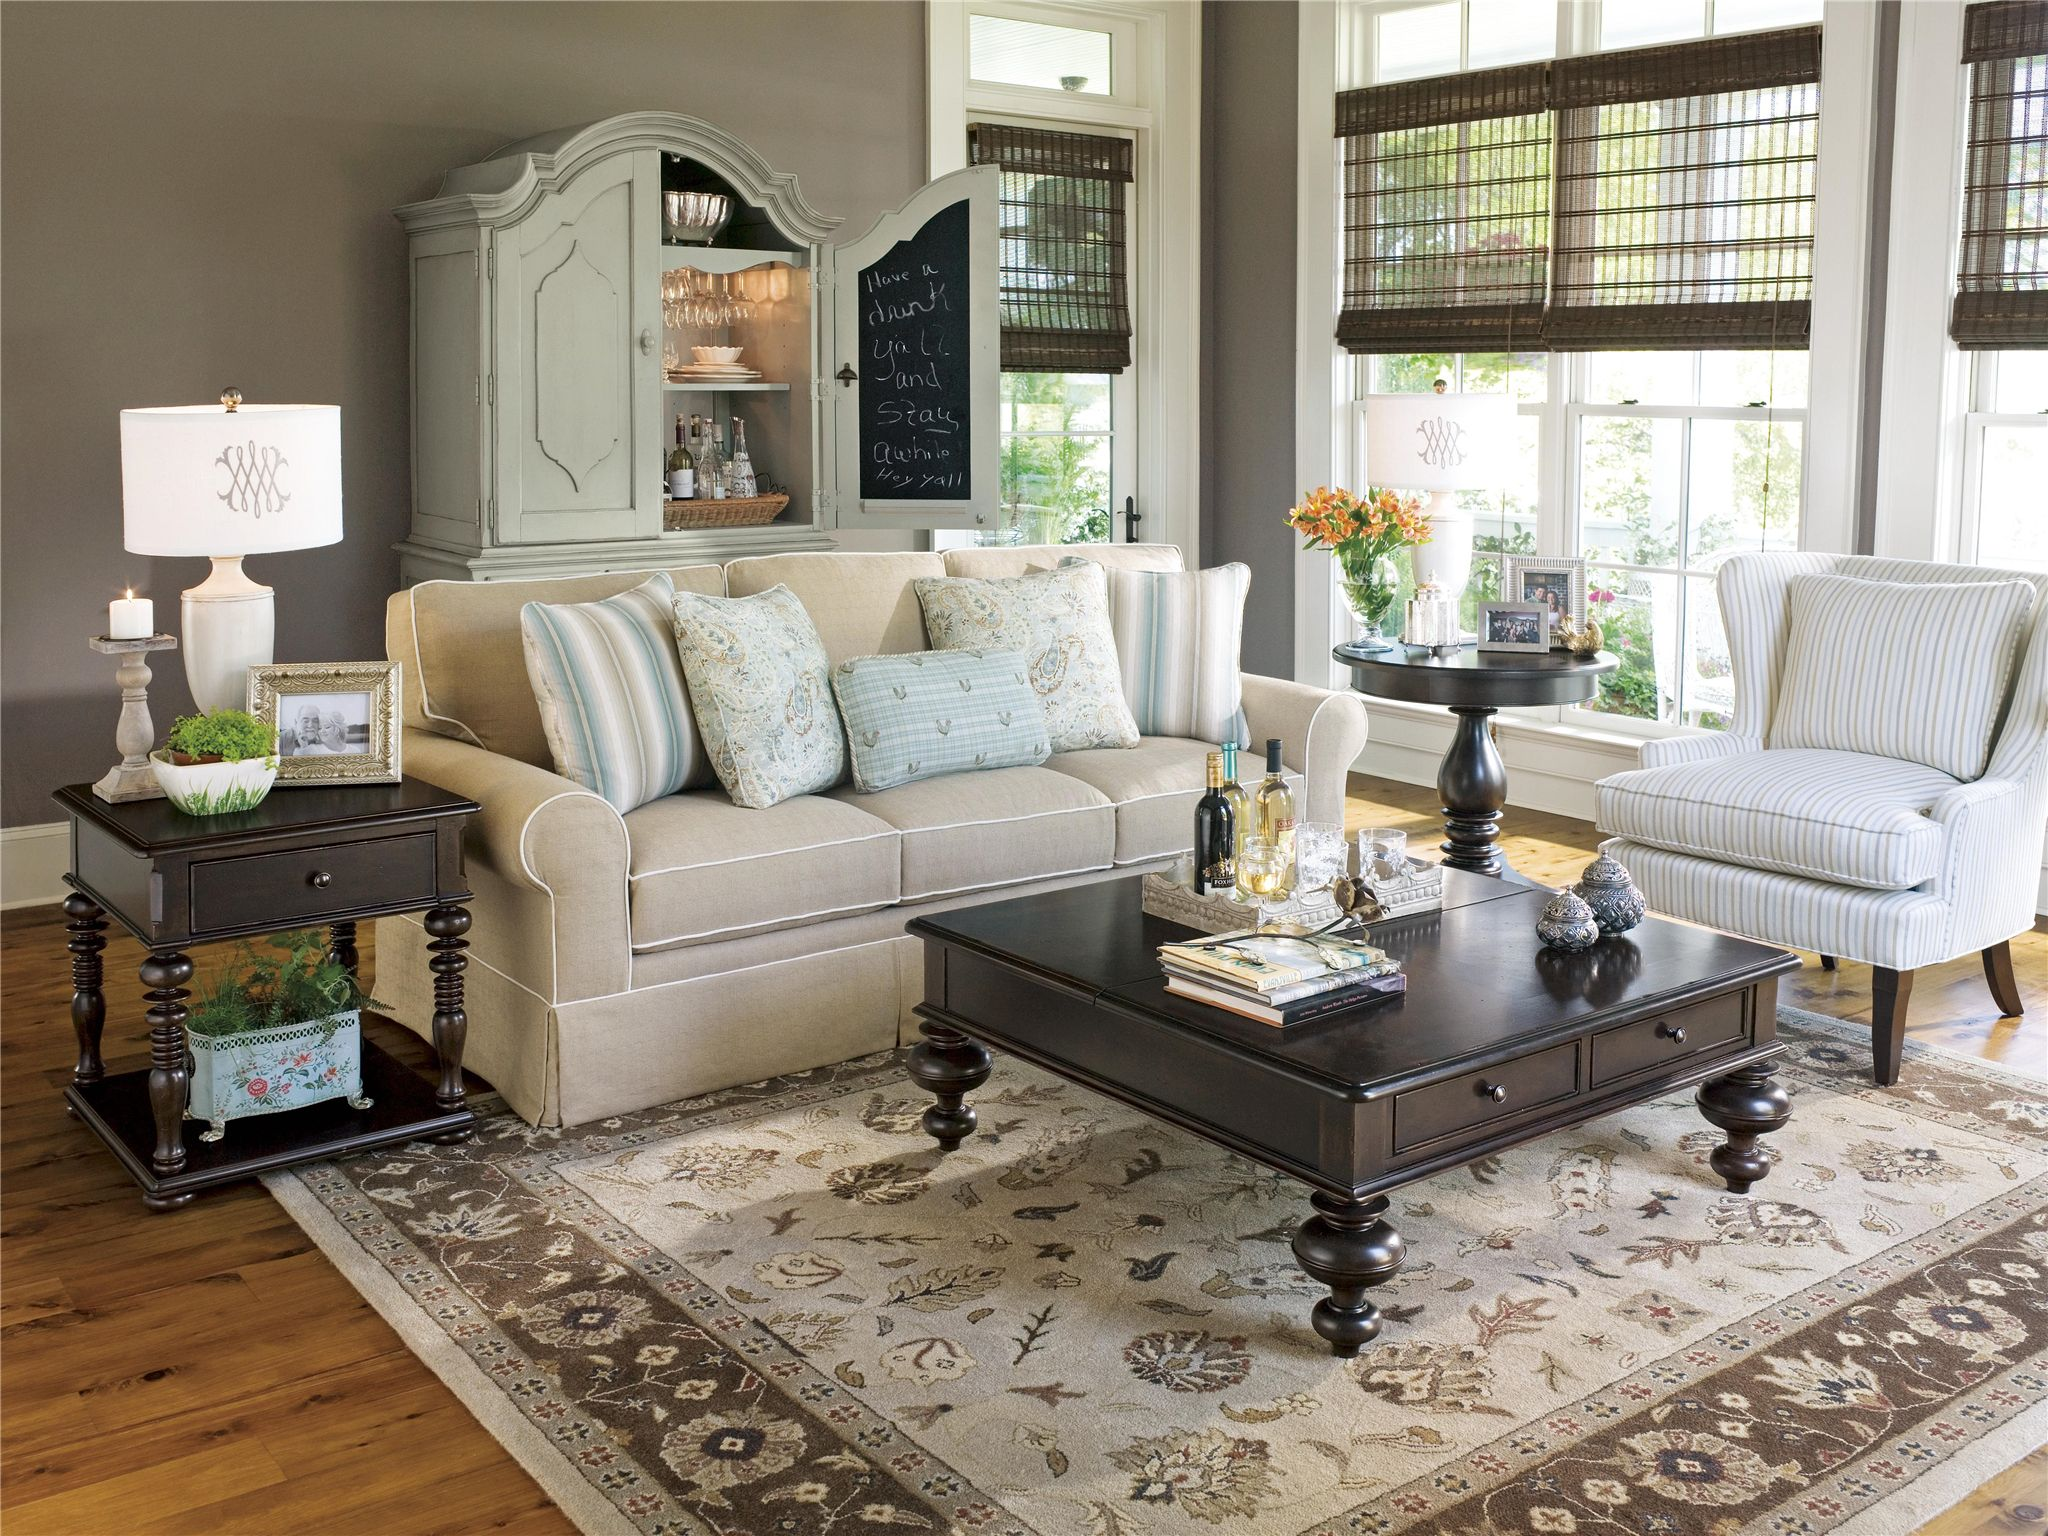 17 Best images about Paula Deen furniture on Pinterest | Summer porch, Day  bed and Furniture